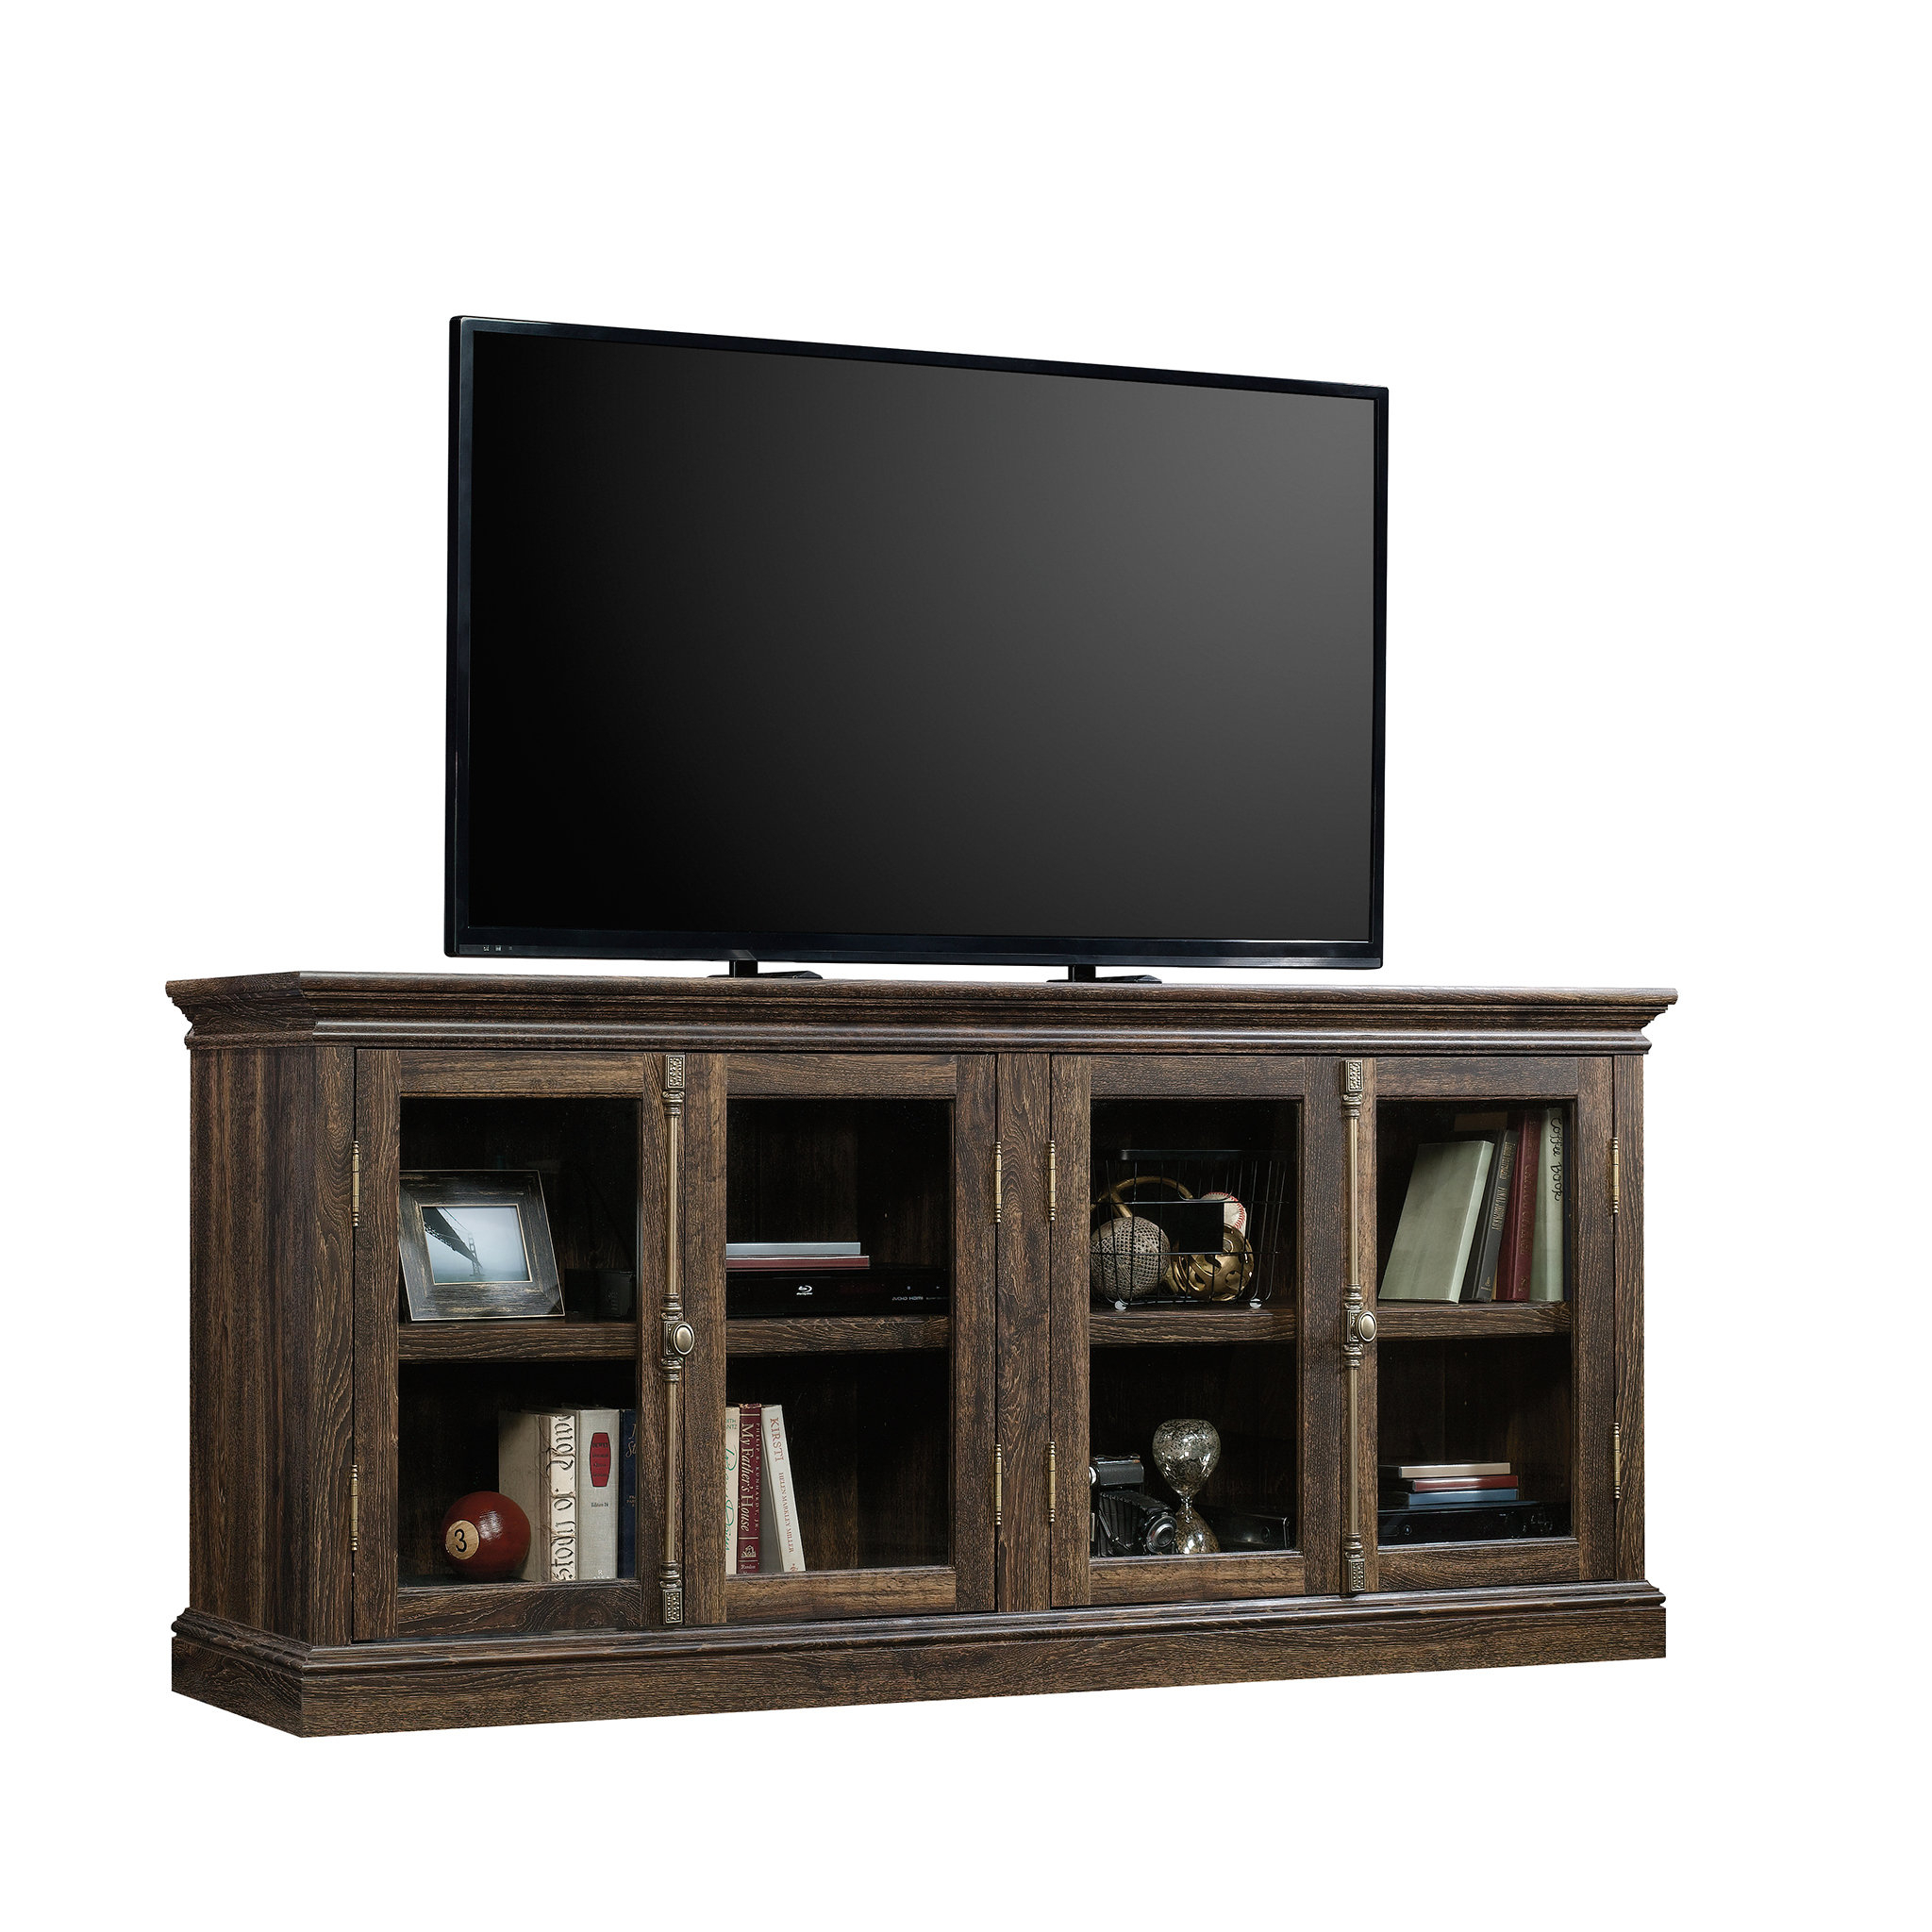 70 Inch Tv Stands | Joss & Main Intended For Annabelle Cream 70 Inch Tv Stands (View 15 of 30)